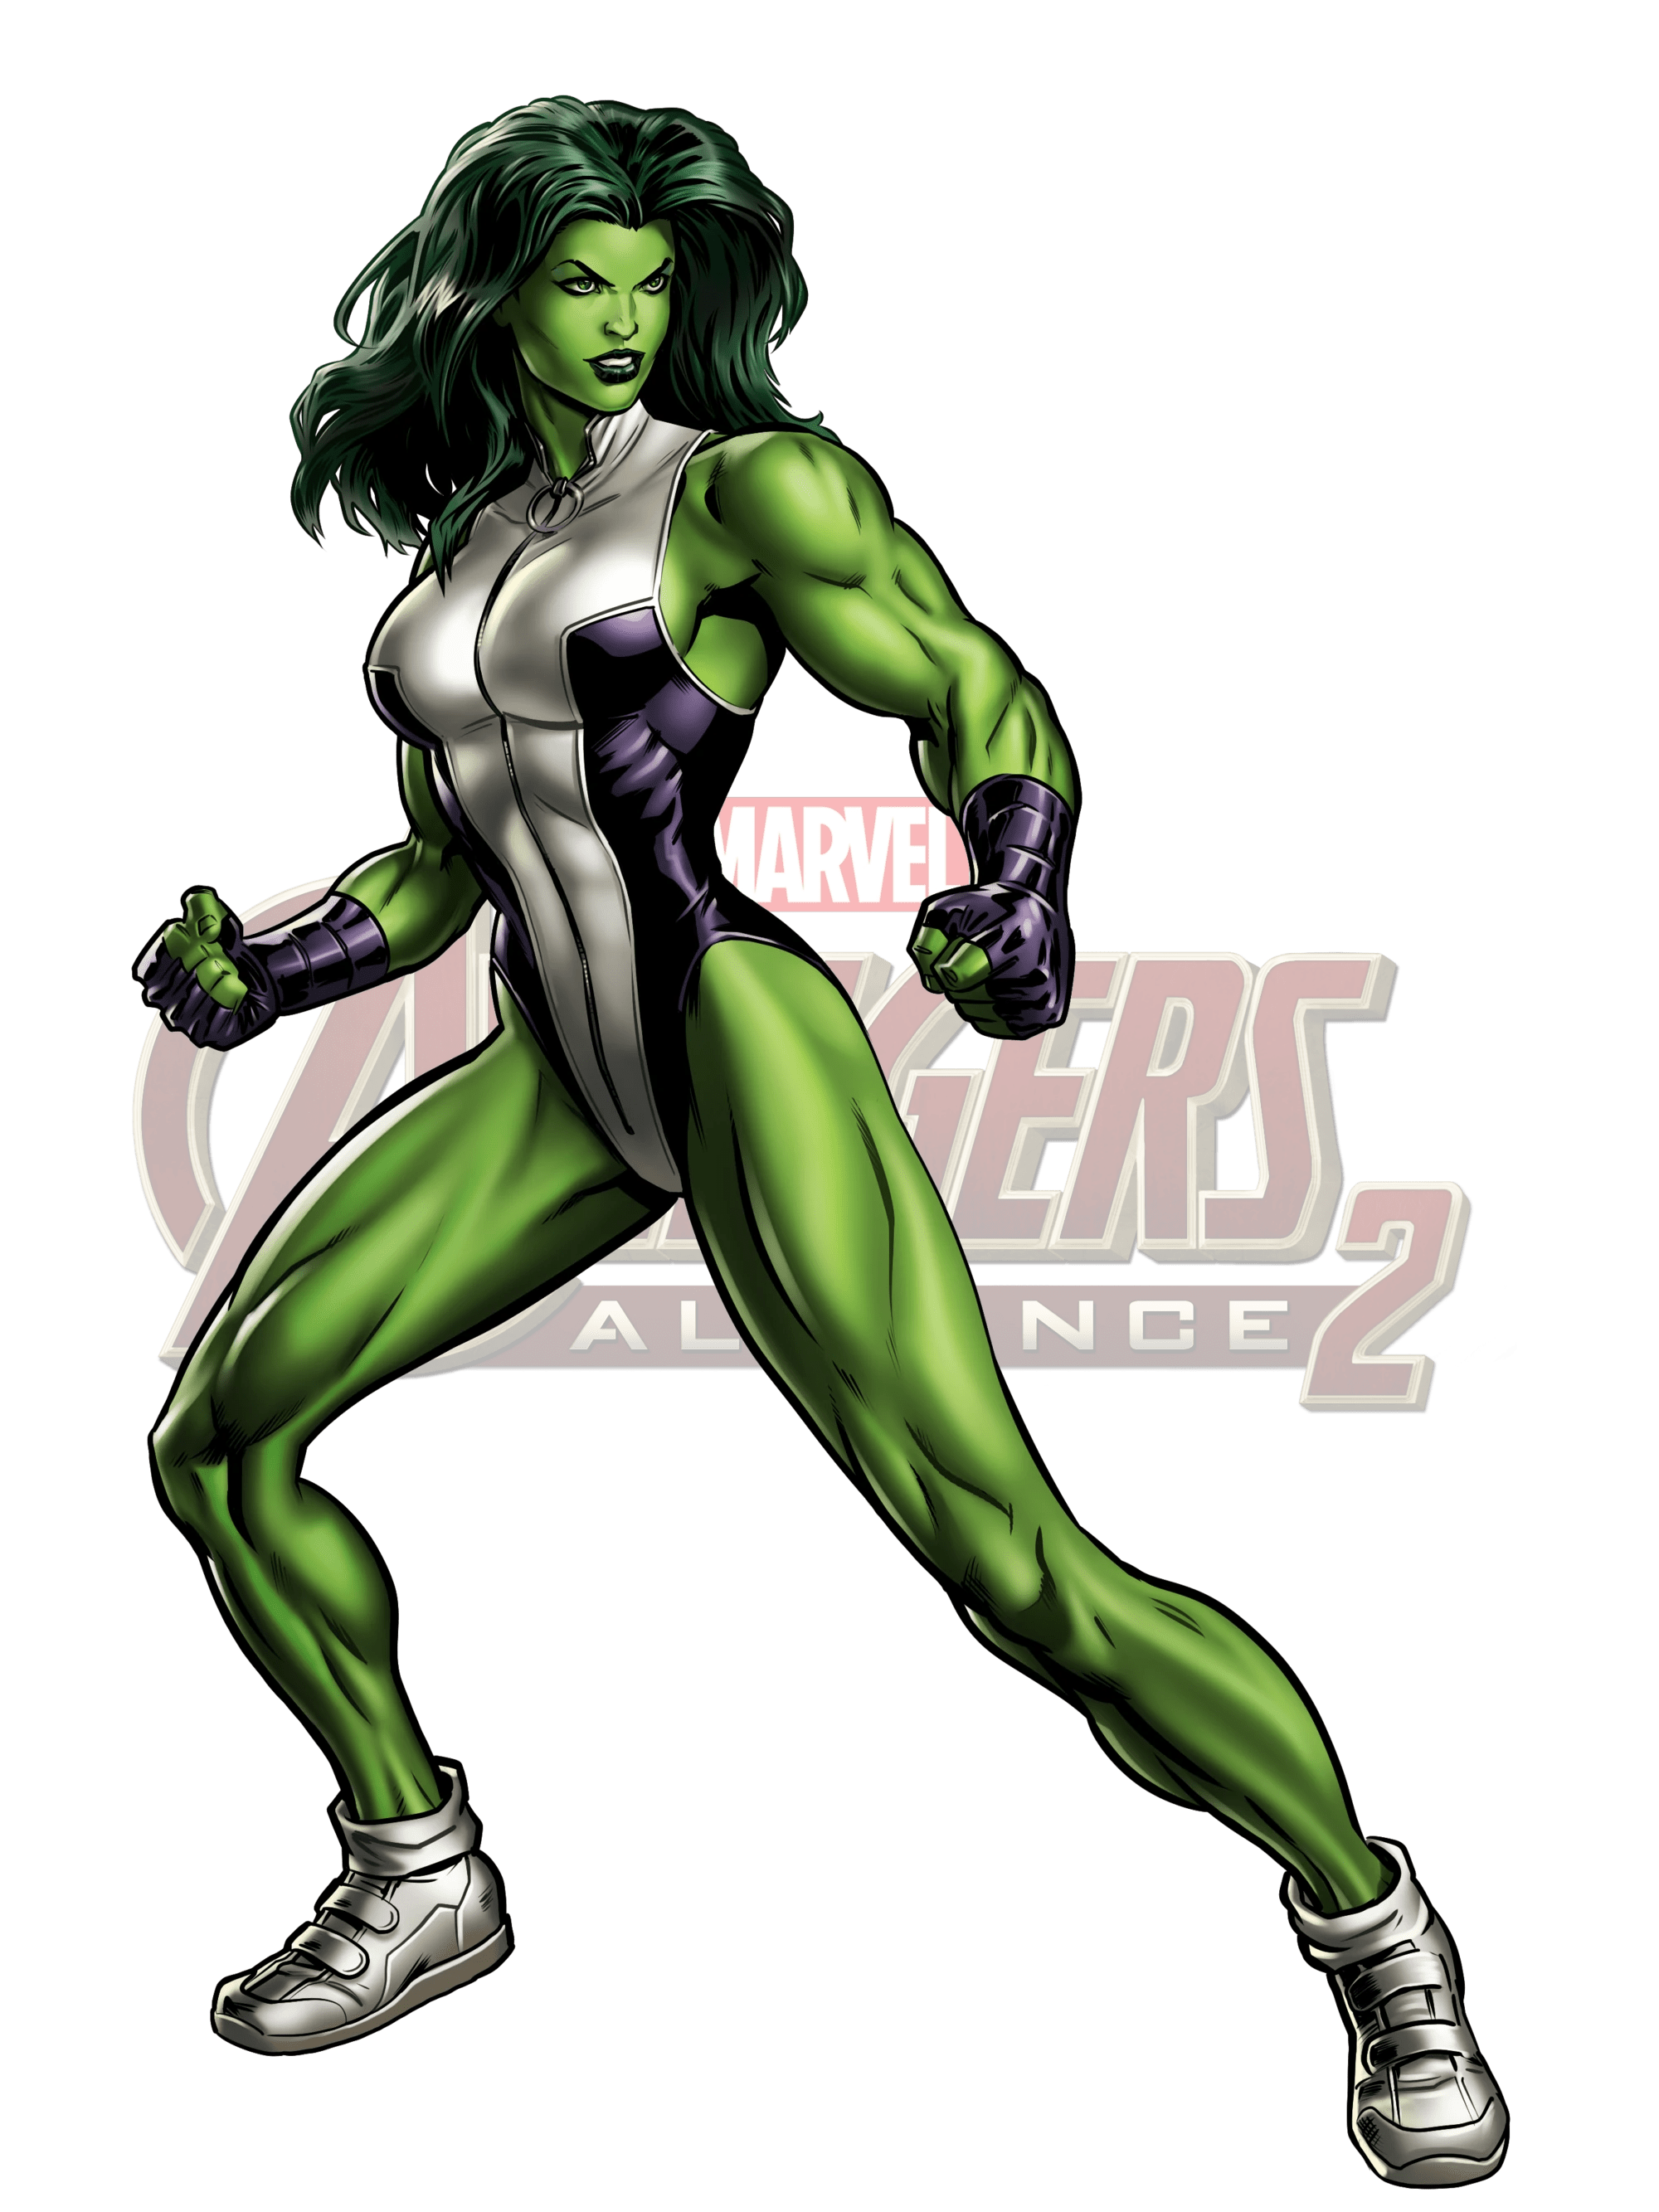 Avengers Assemble Wallpaper Hd Classic She Hulk Marvel Avengers Alliance 2 Wikia